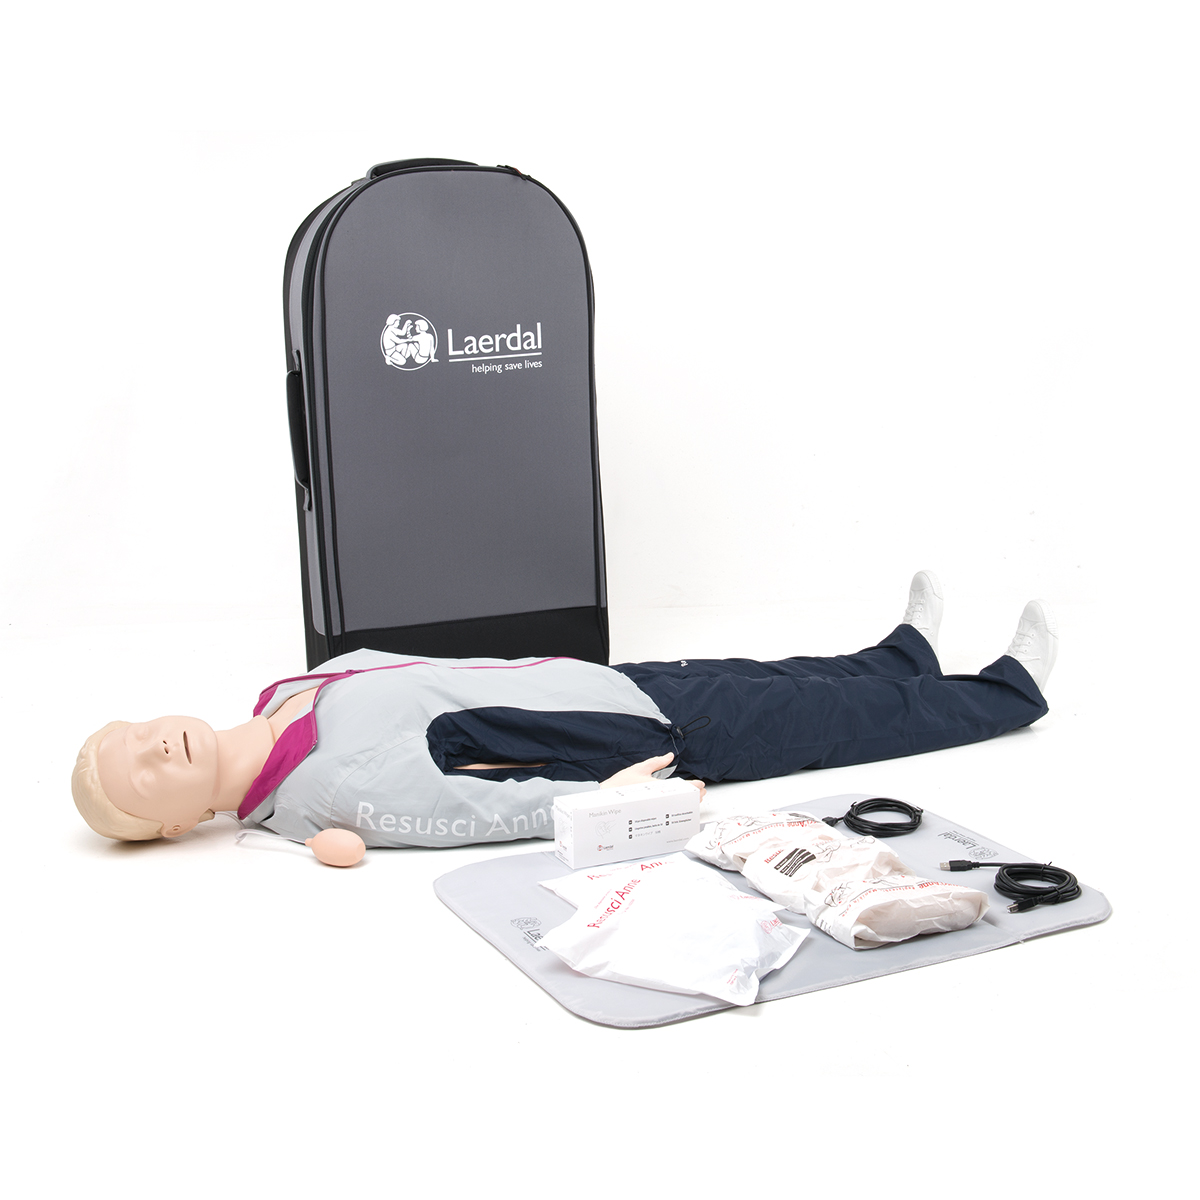 Laerdal Resusci® Anne QCPR First Aid Full Body with Trolley Case